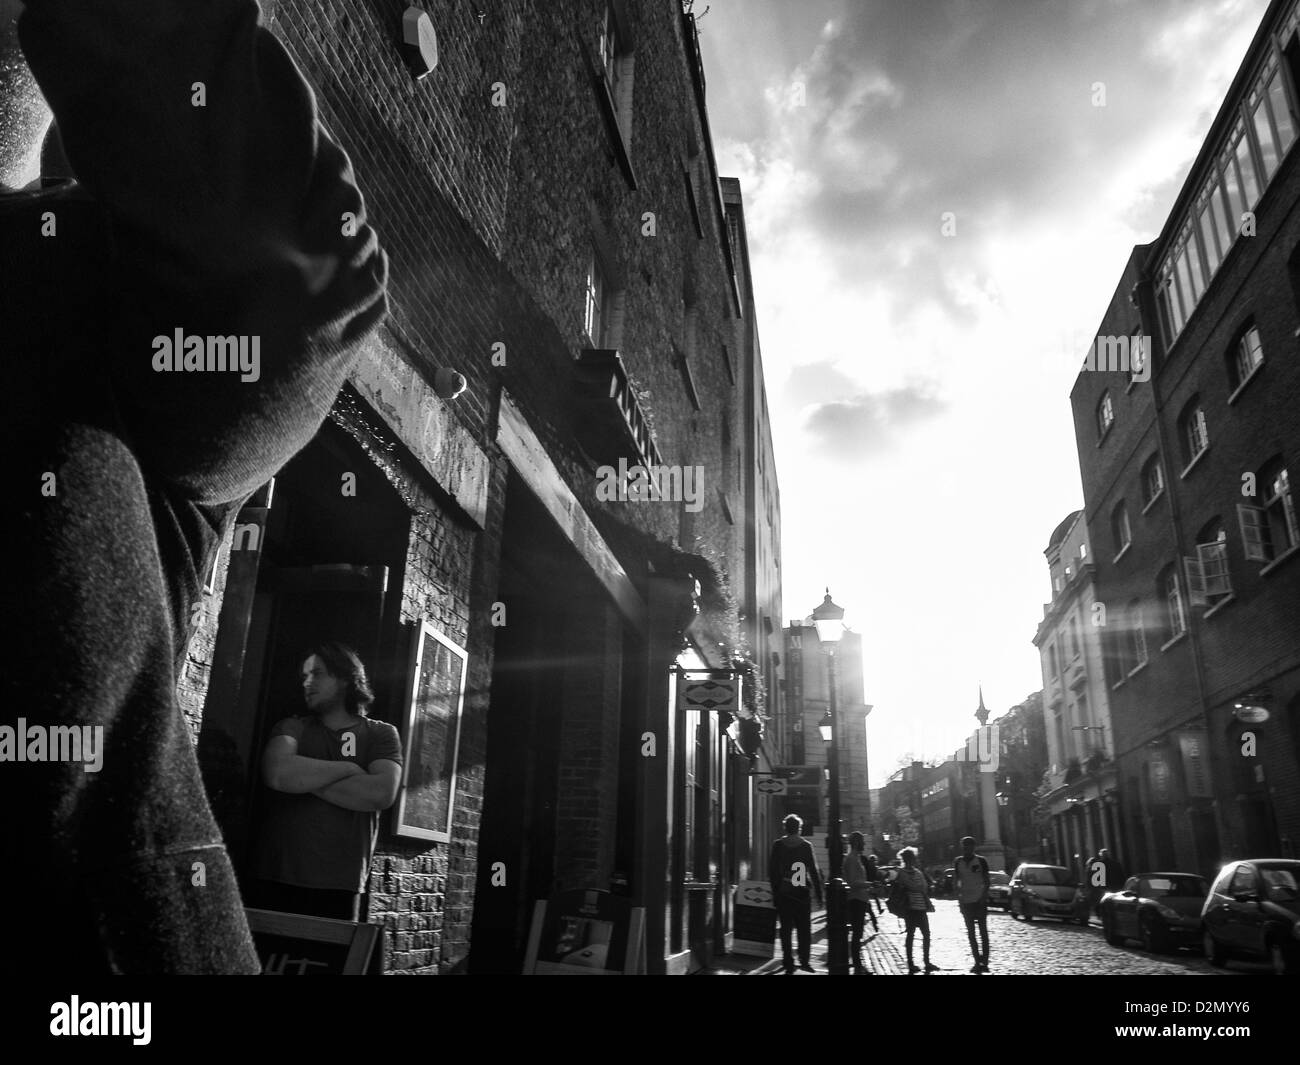 a man o a street in spring evening light - Stock Image